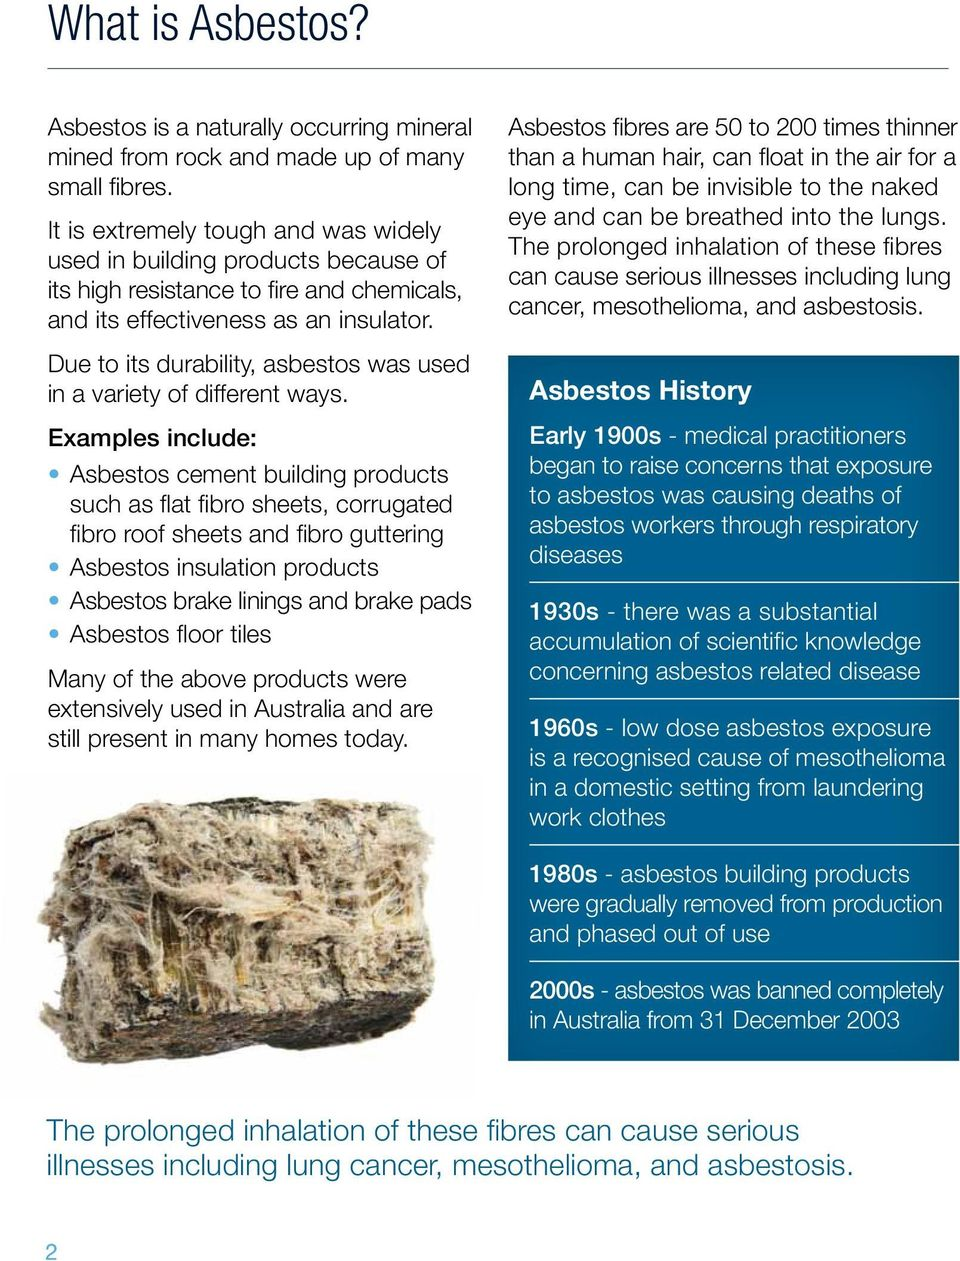 Due to its durability, asbestos was used in a variety of different ways.